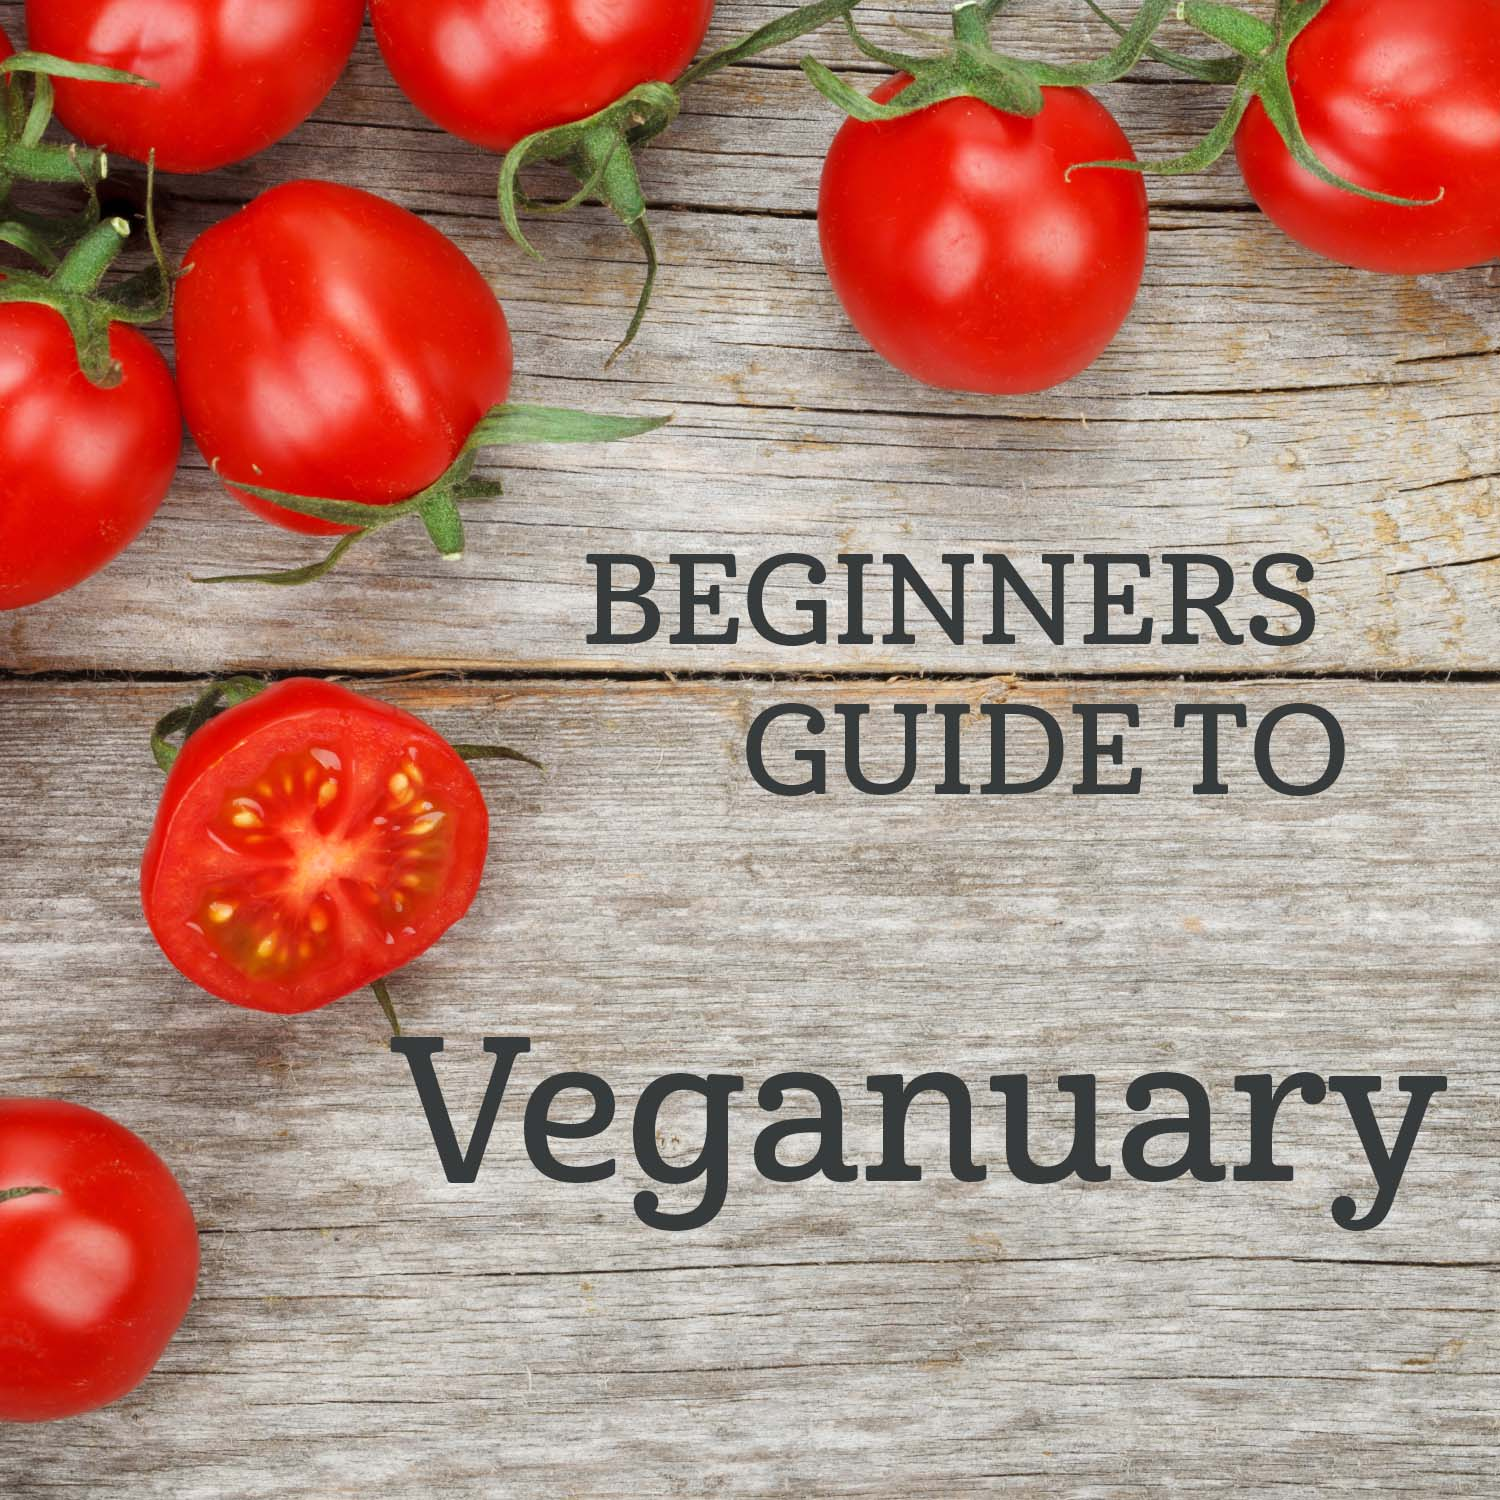 A beginners guide to Veganuary